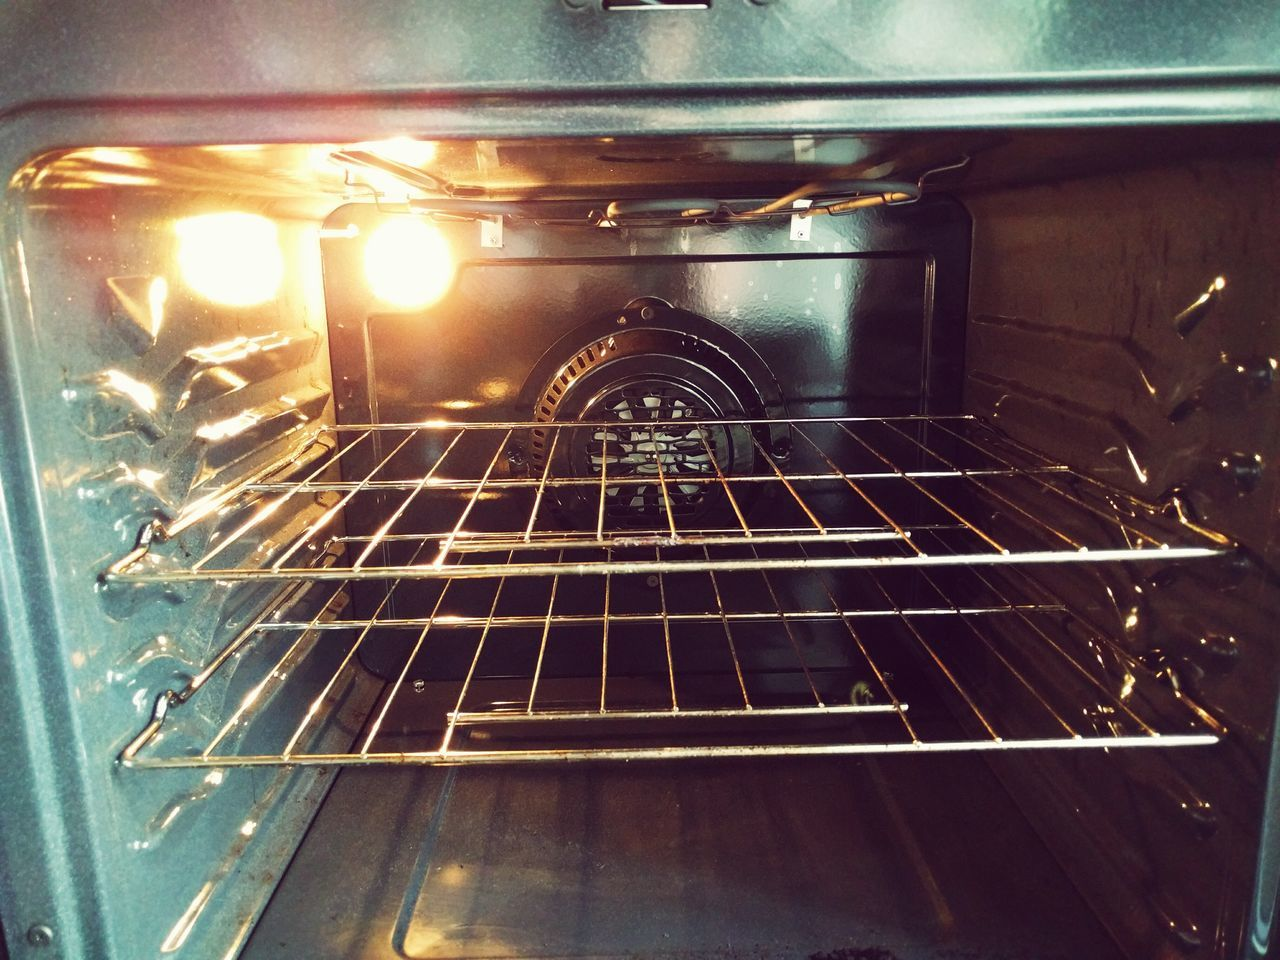 It's Hot In Here Oven OvenBaked Ovencooking Oven Baked Oven Fresh Ovenclean Ovenfood Oven Element Ovens Are Hot